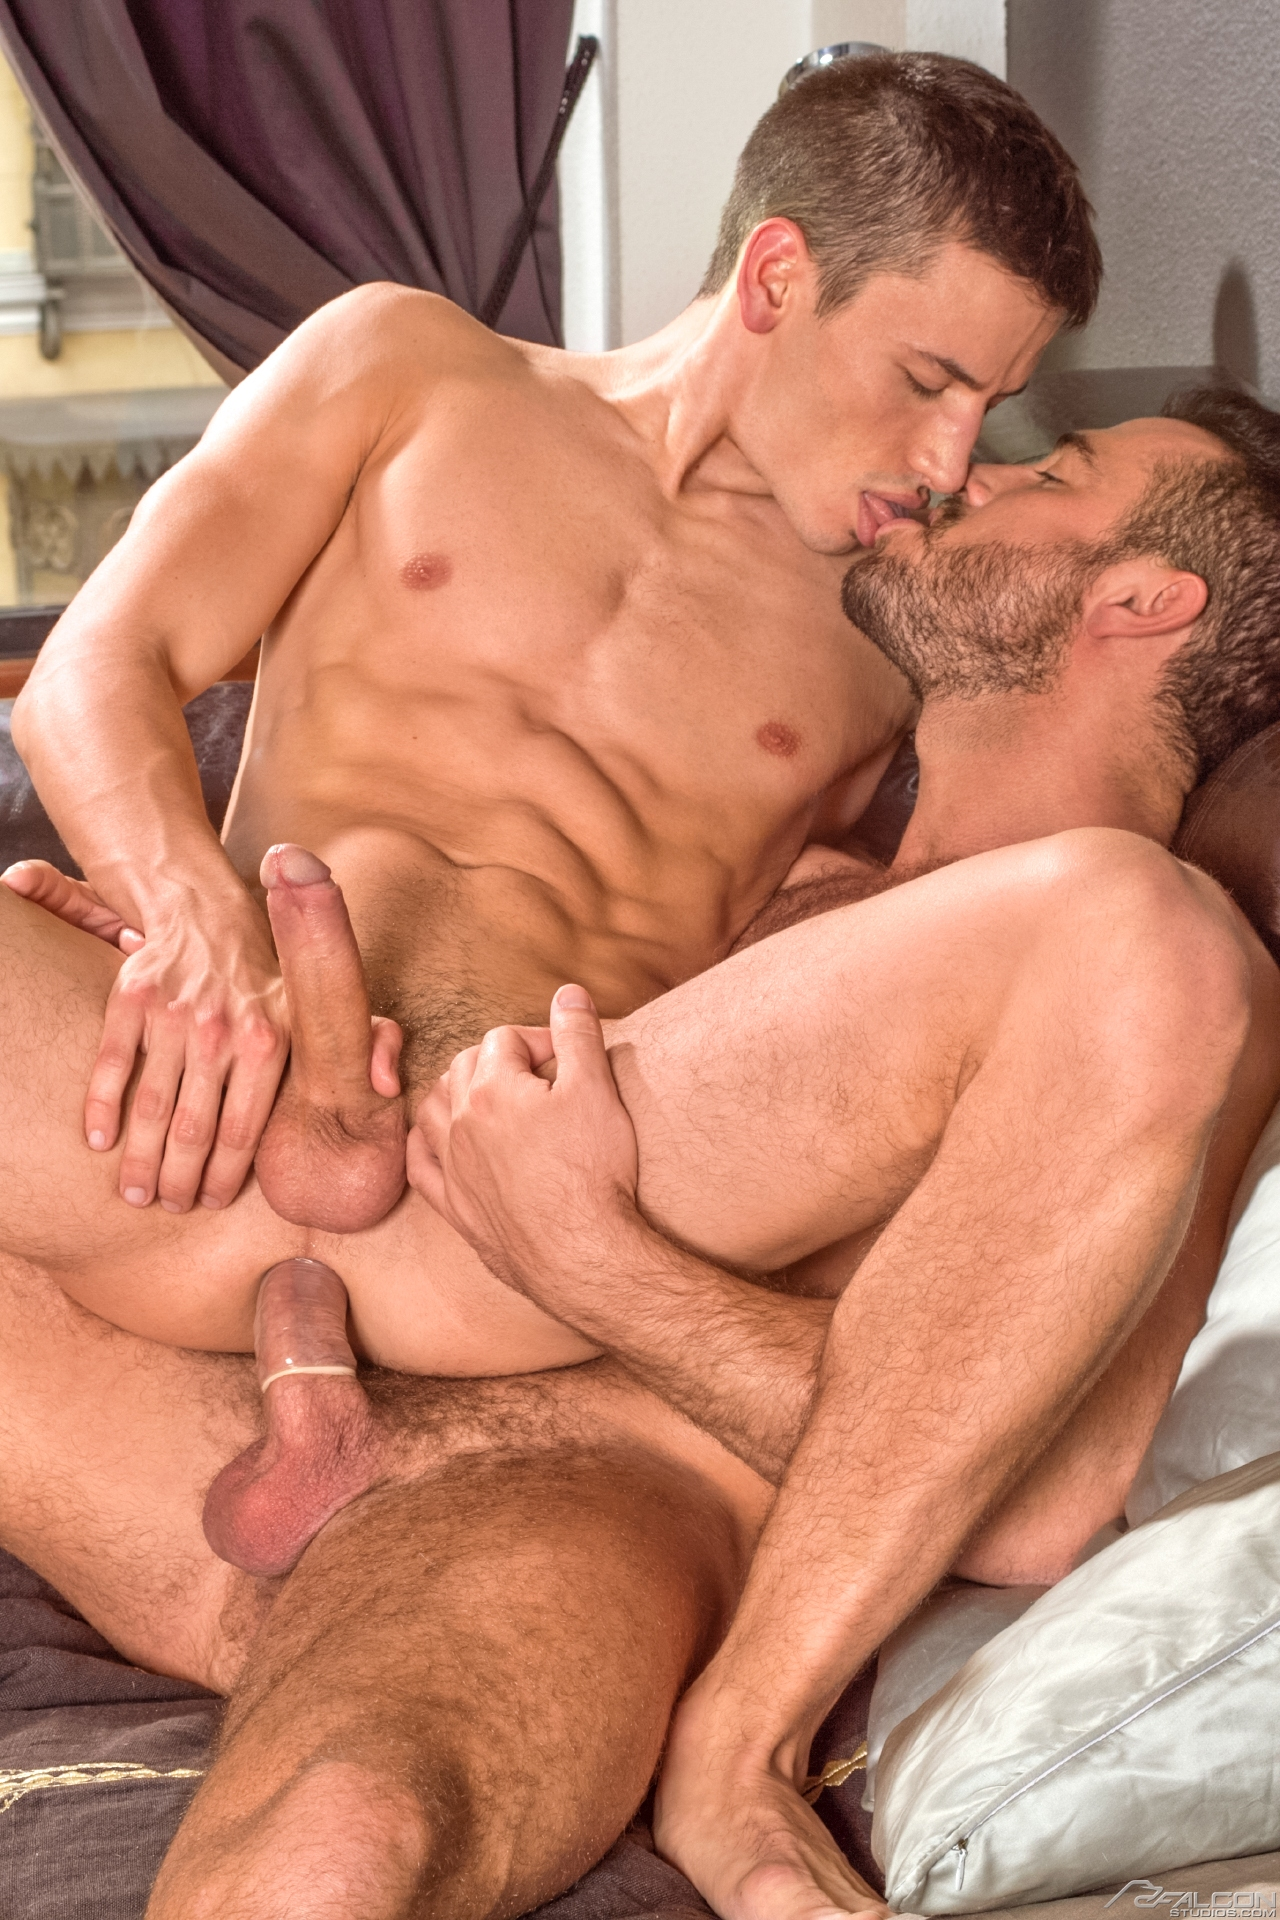 Movies Of Gay Guys In Sex Fun